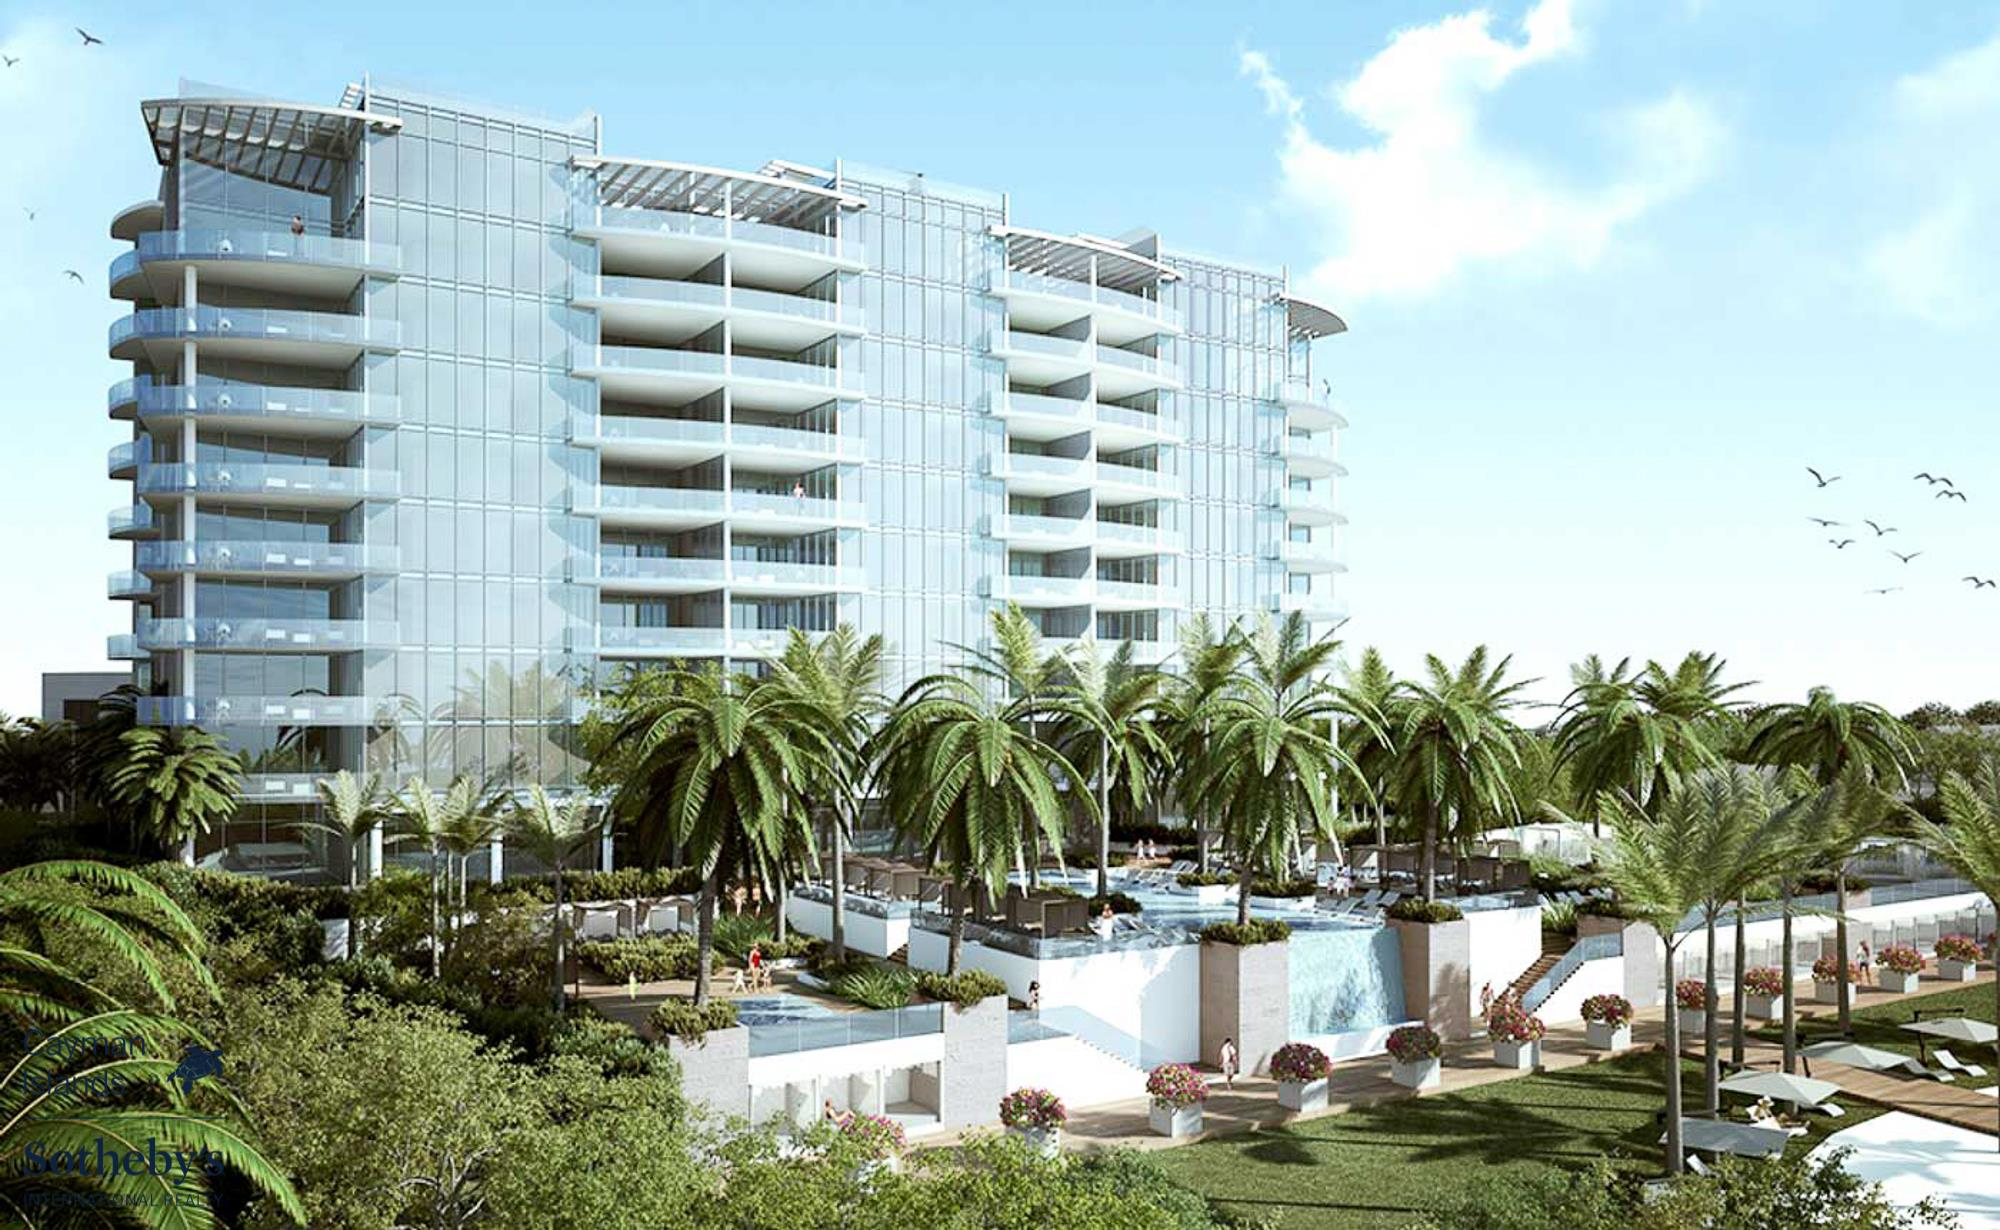 The Watermark, Seven Mile Beach. Artists rendering of the new Fraser Wellon development